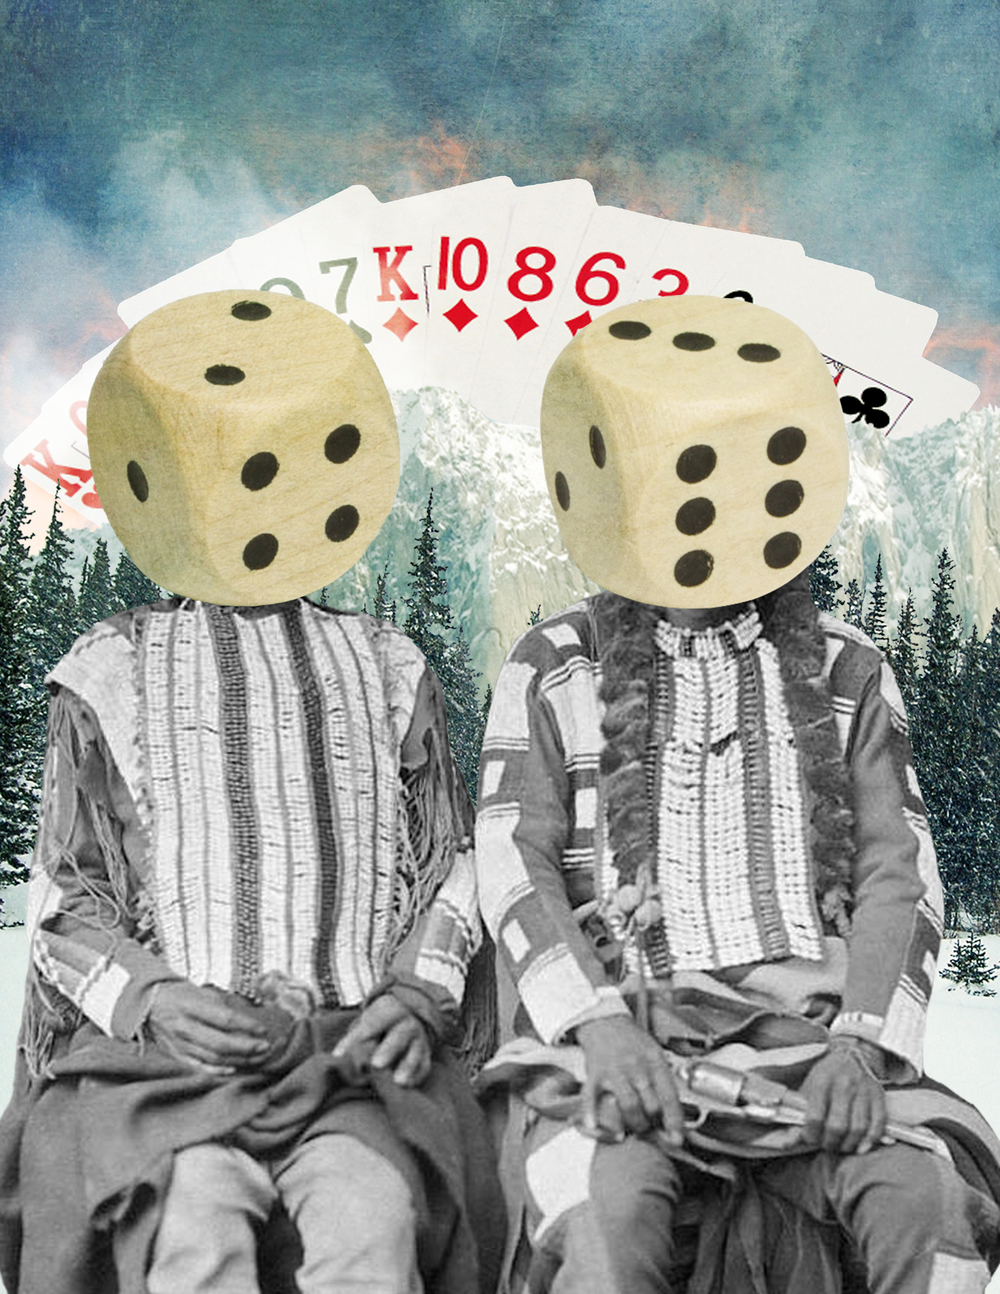 Jenkins, Cheyenne. Gambling Indians. 2016. Digital Collage. Montreal, Quebec